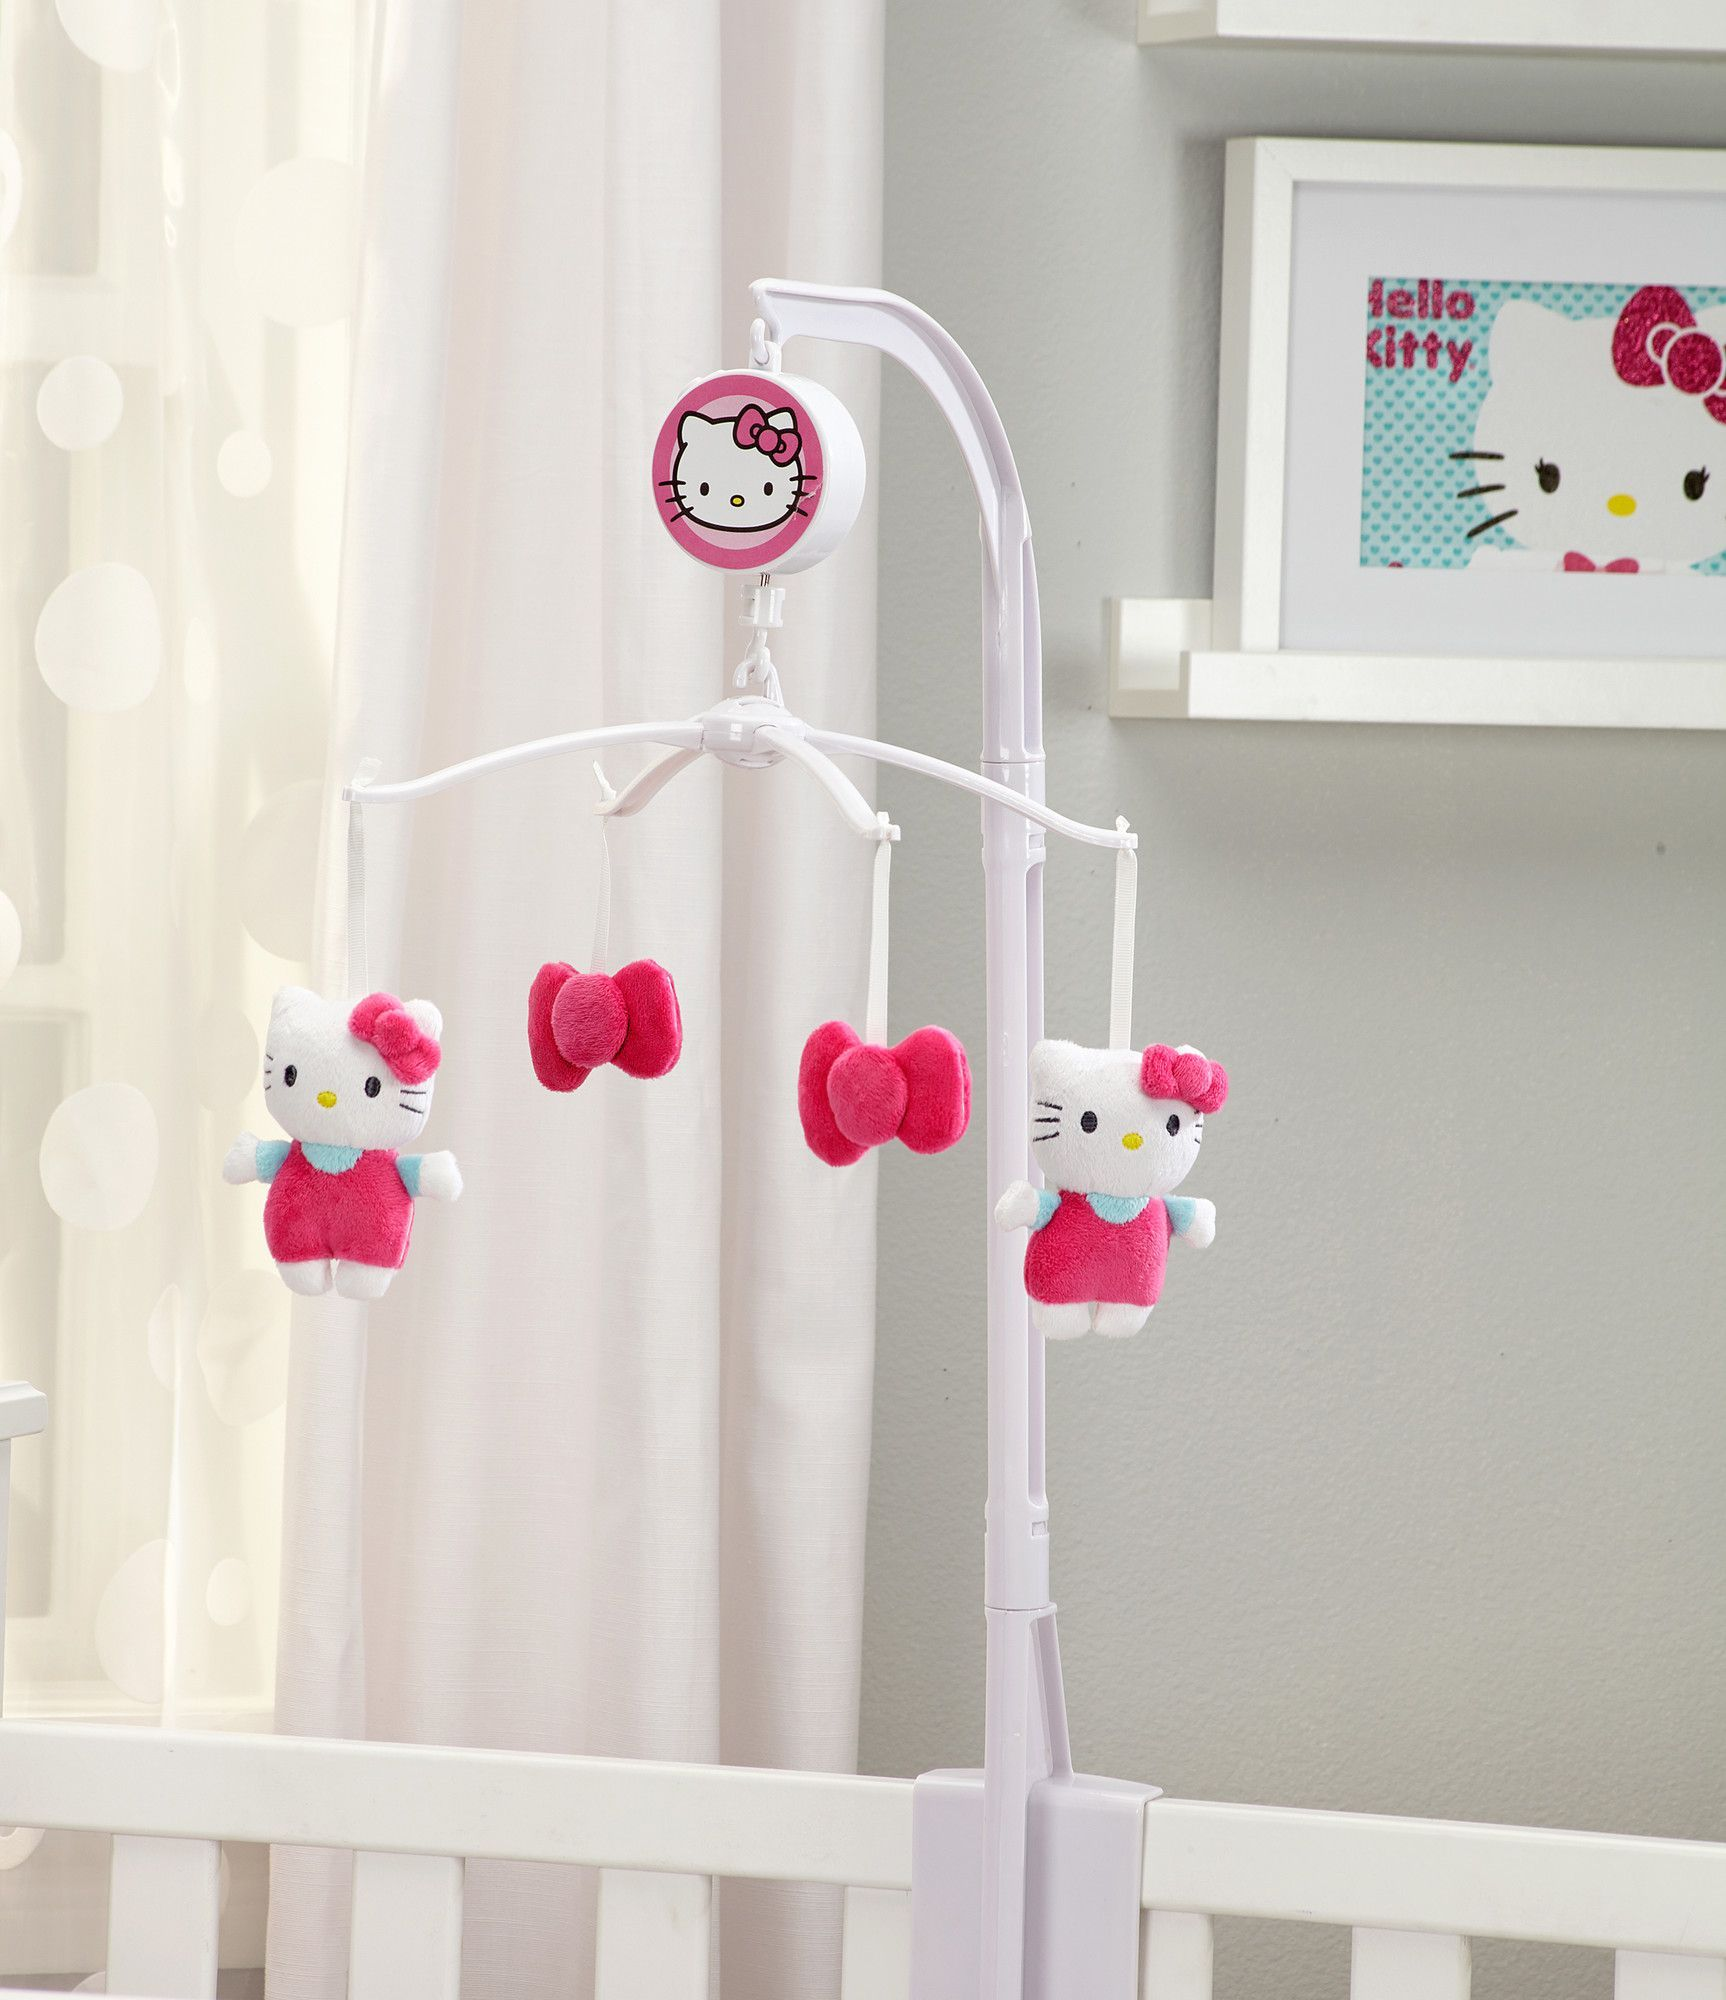 Hello Kitty Kinderzimmer Strategies On Helping Little One Sleep Through The Night Baby Girl